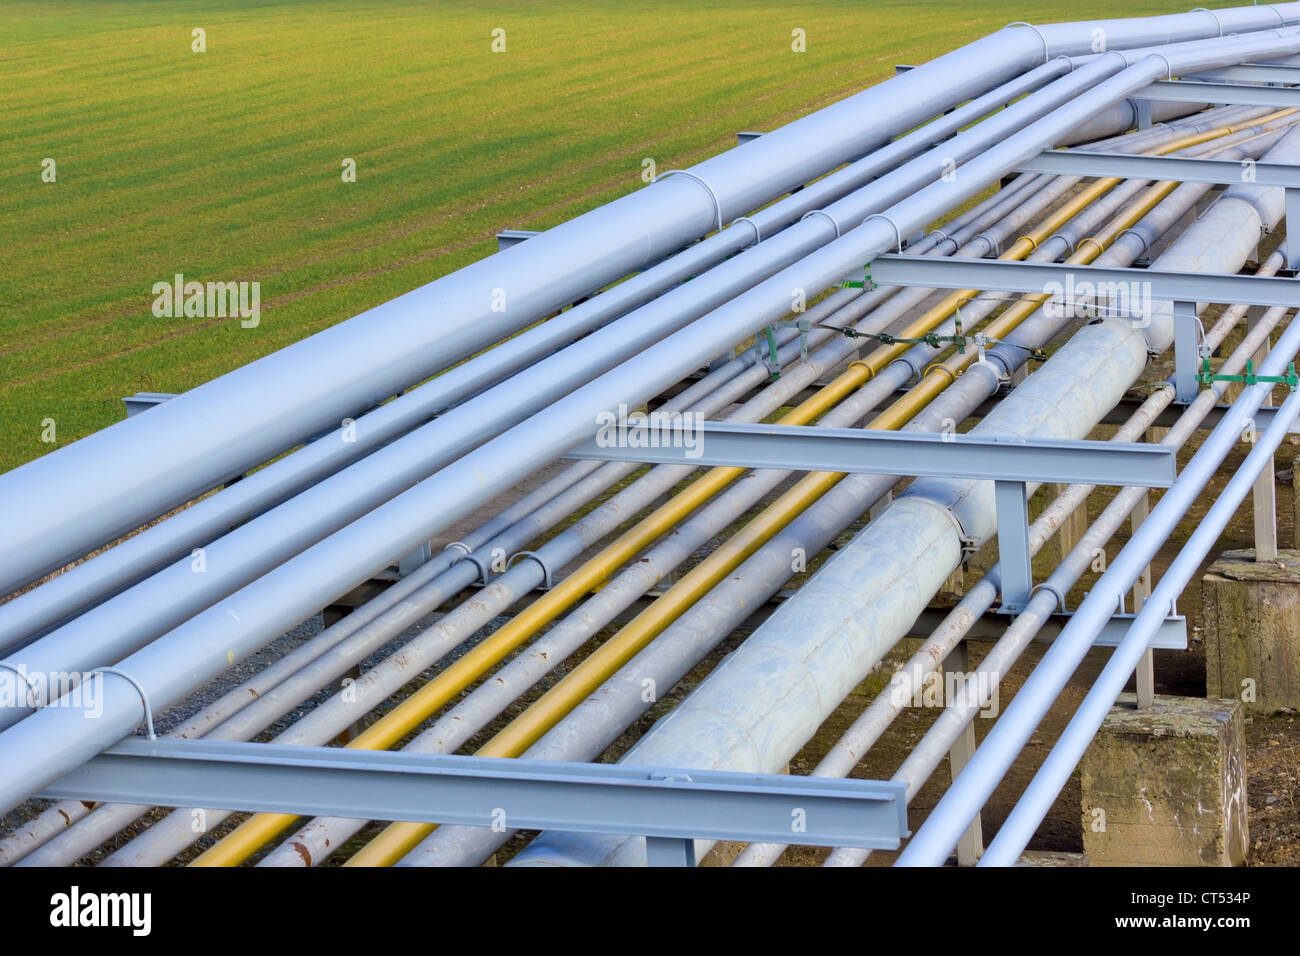 Pipeline tubes on green field - Stock Image